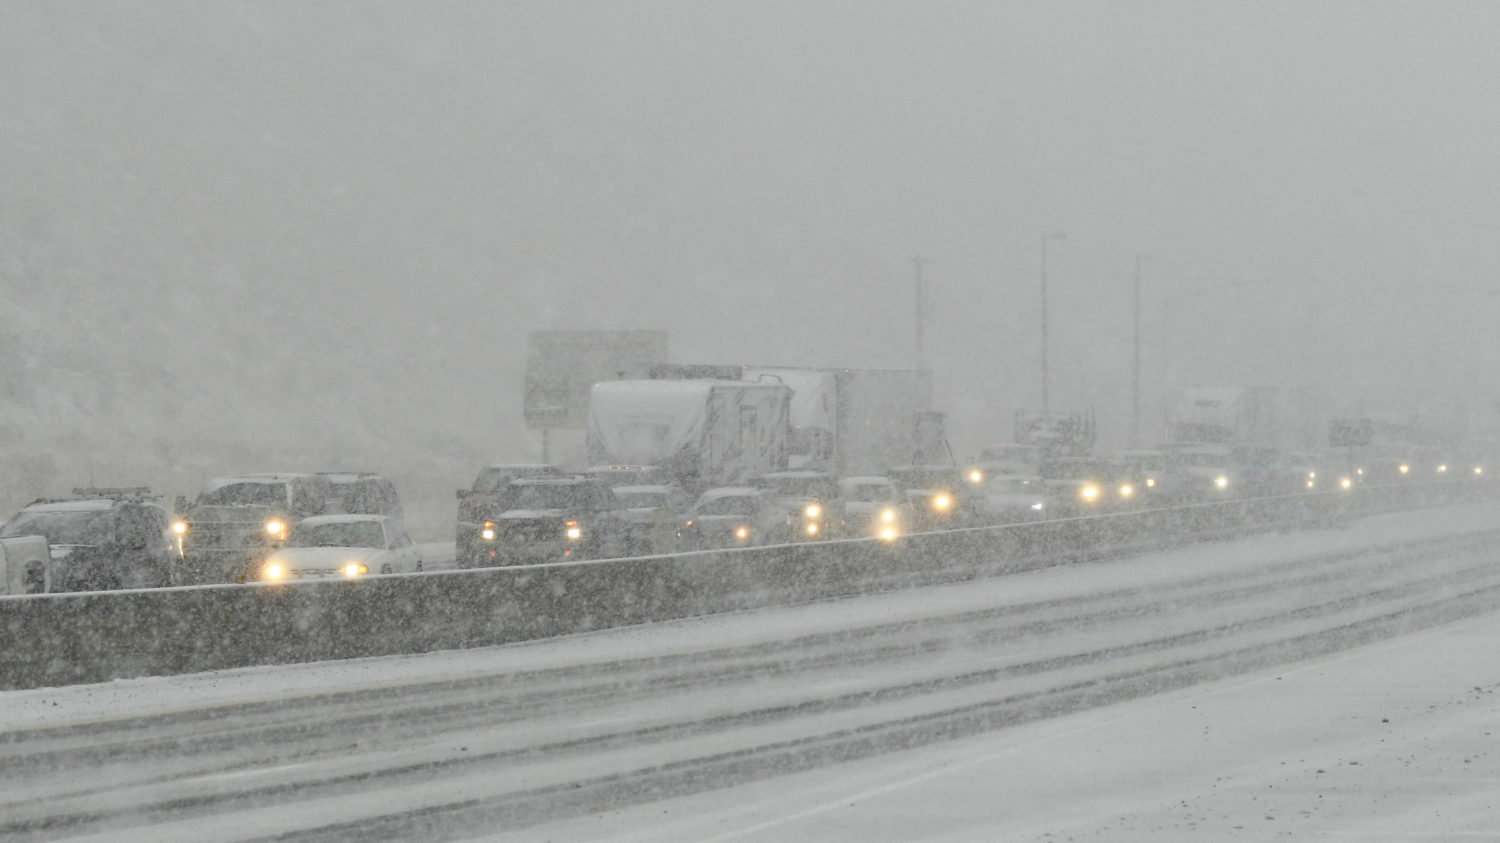 NOAA: Winter Storm Warning for Denver, CO Today/Tomorrow